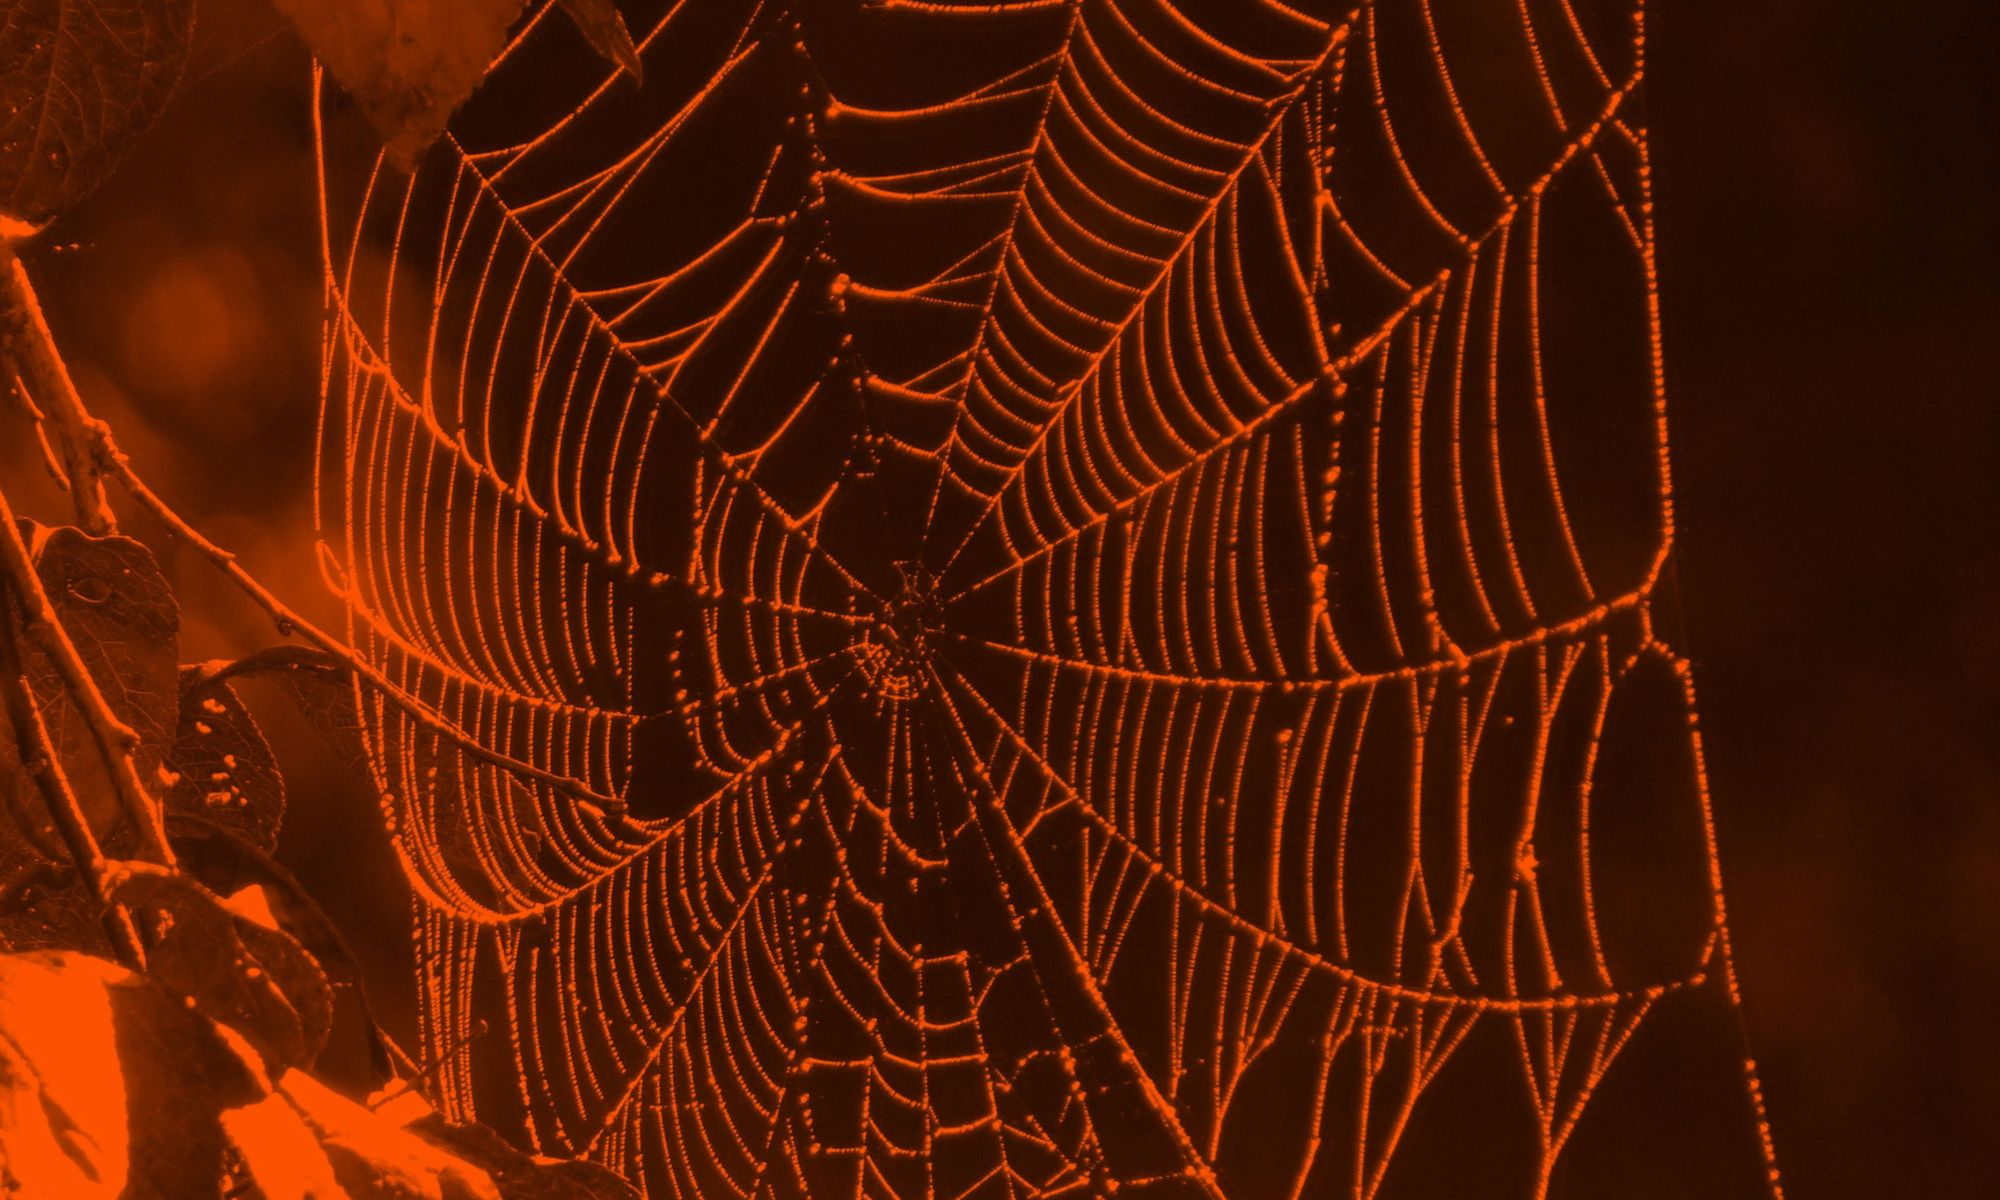 Intricate spider web in black and orange Halloween colors